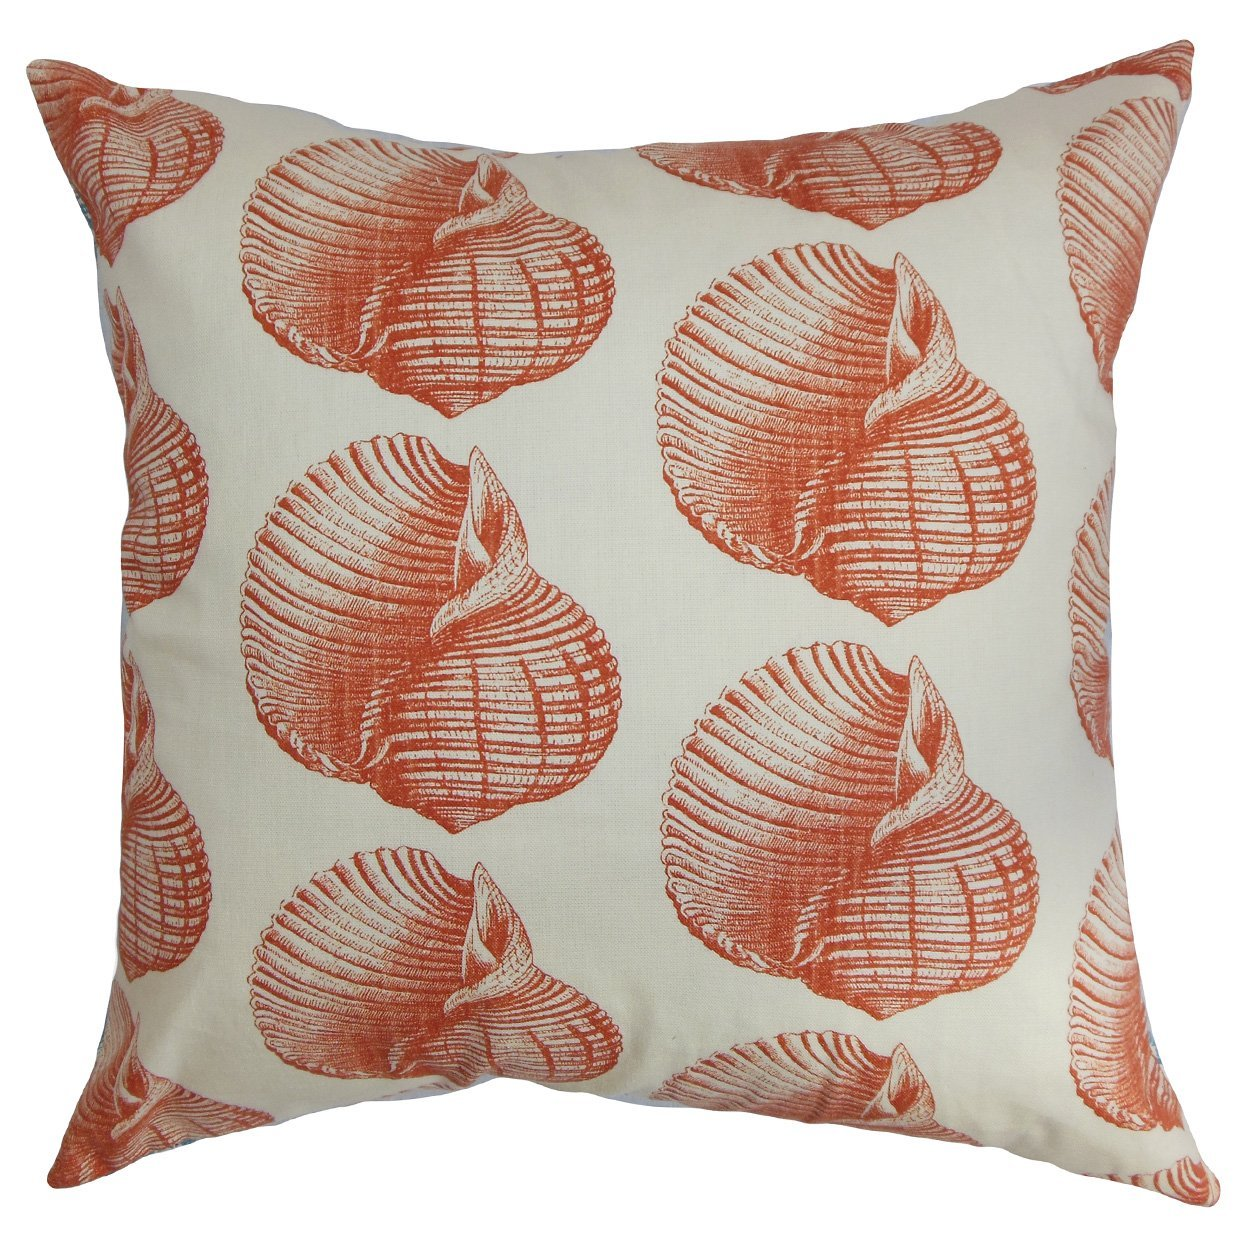 The Pillow Collection Bahari tic Throw Pillow Cover Persimmon